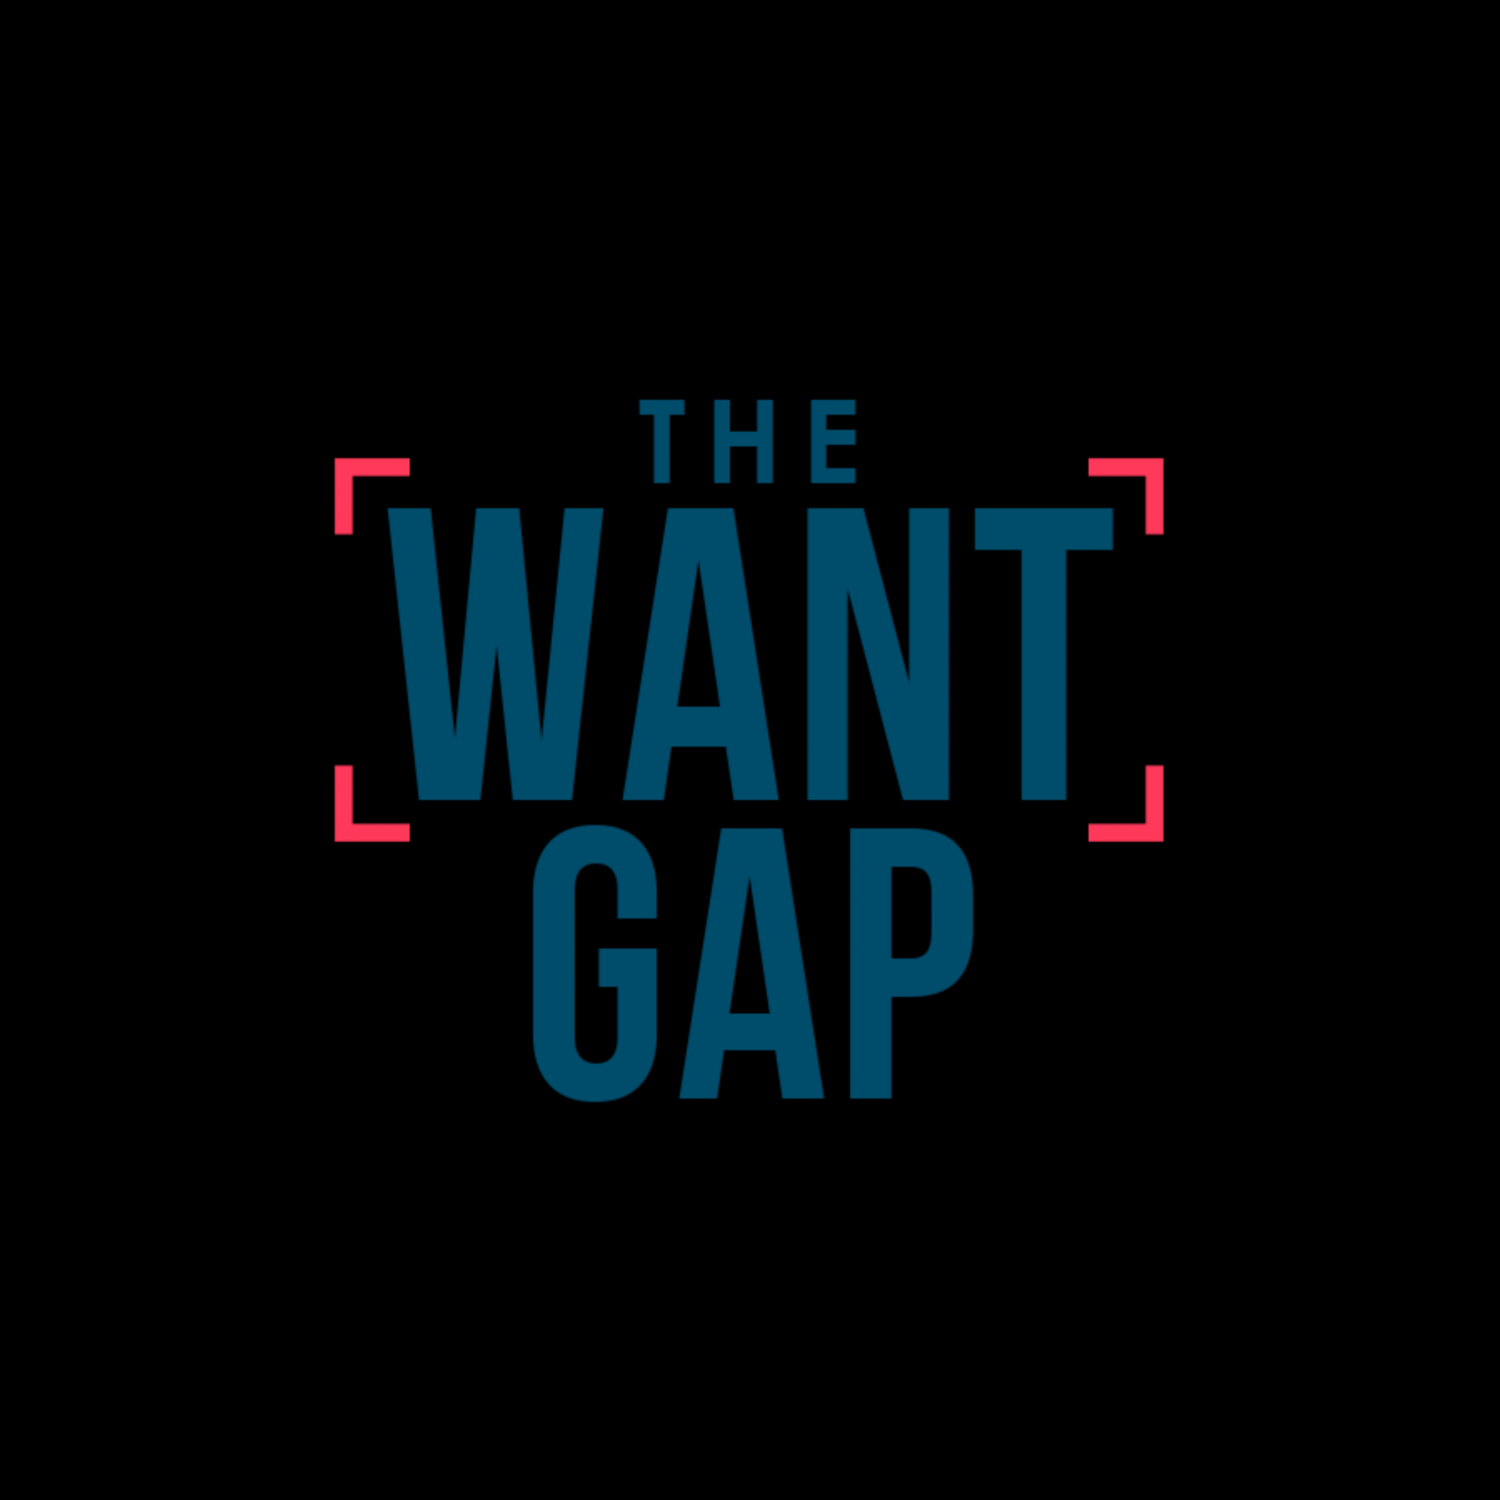 The Want Gap